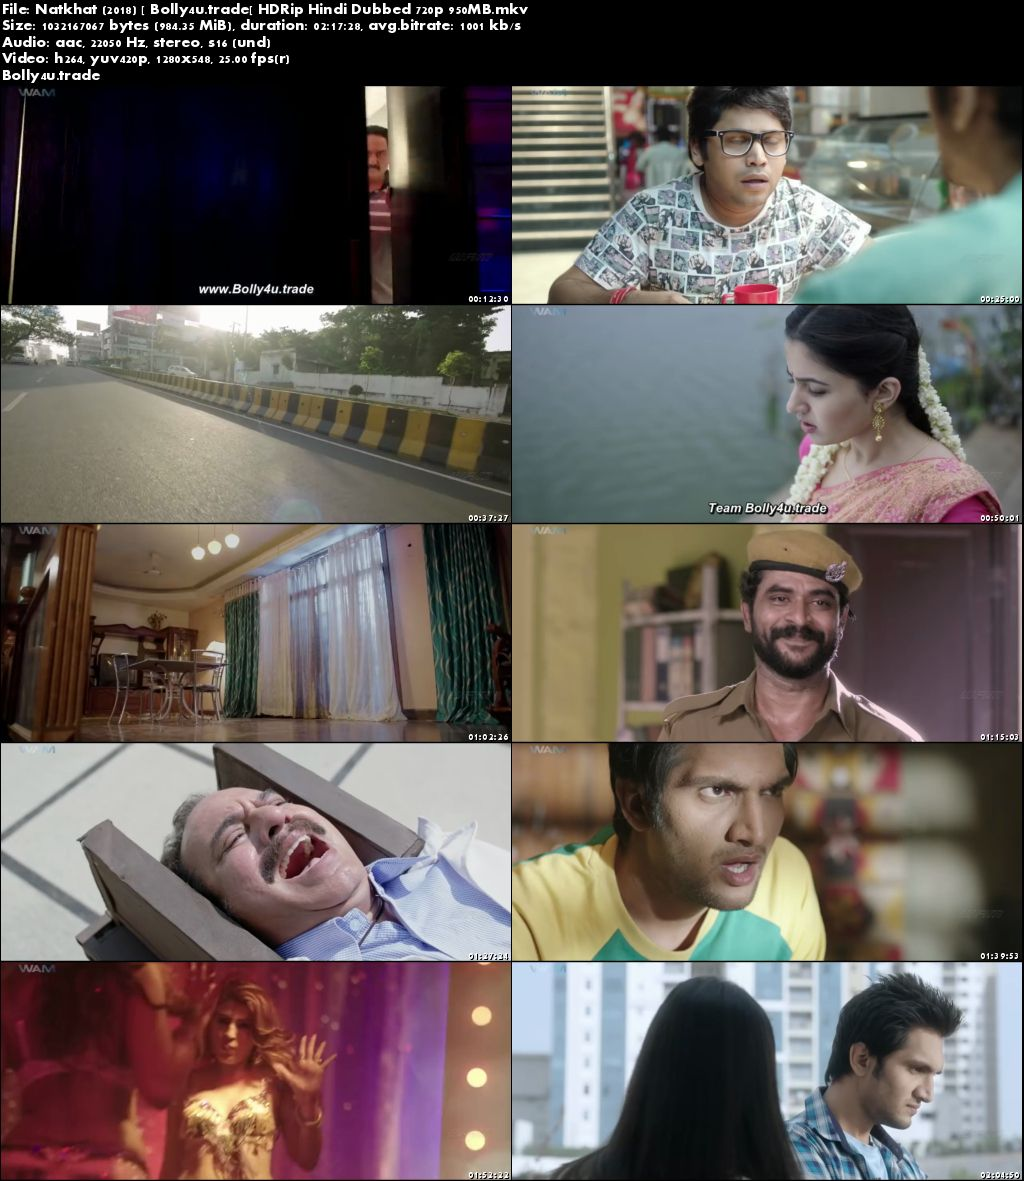 Natkhat 2018 HDRip 950Mb Full Hindi Dubbed Movie Download 720p